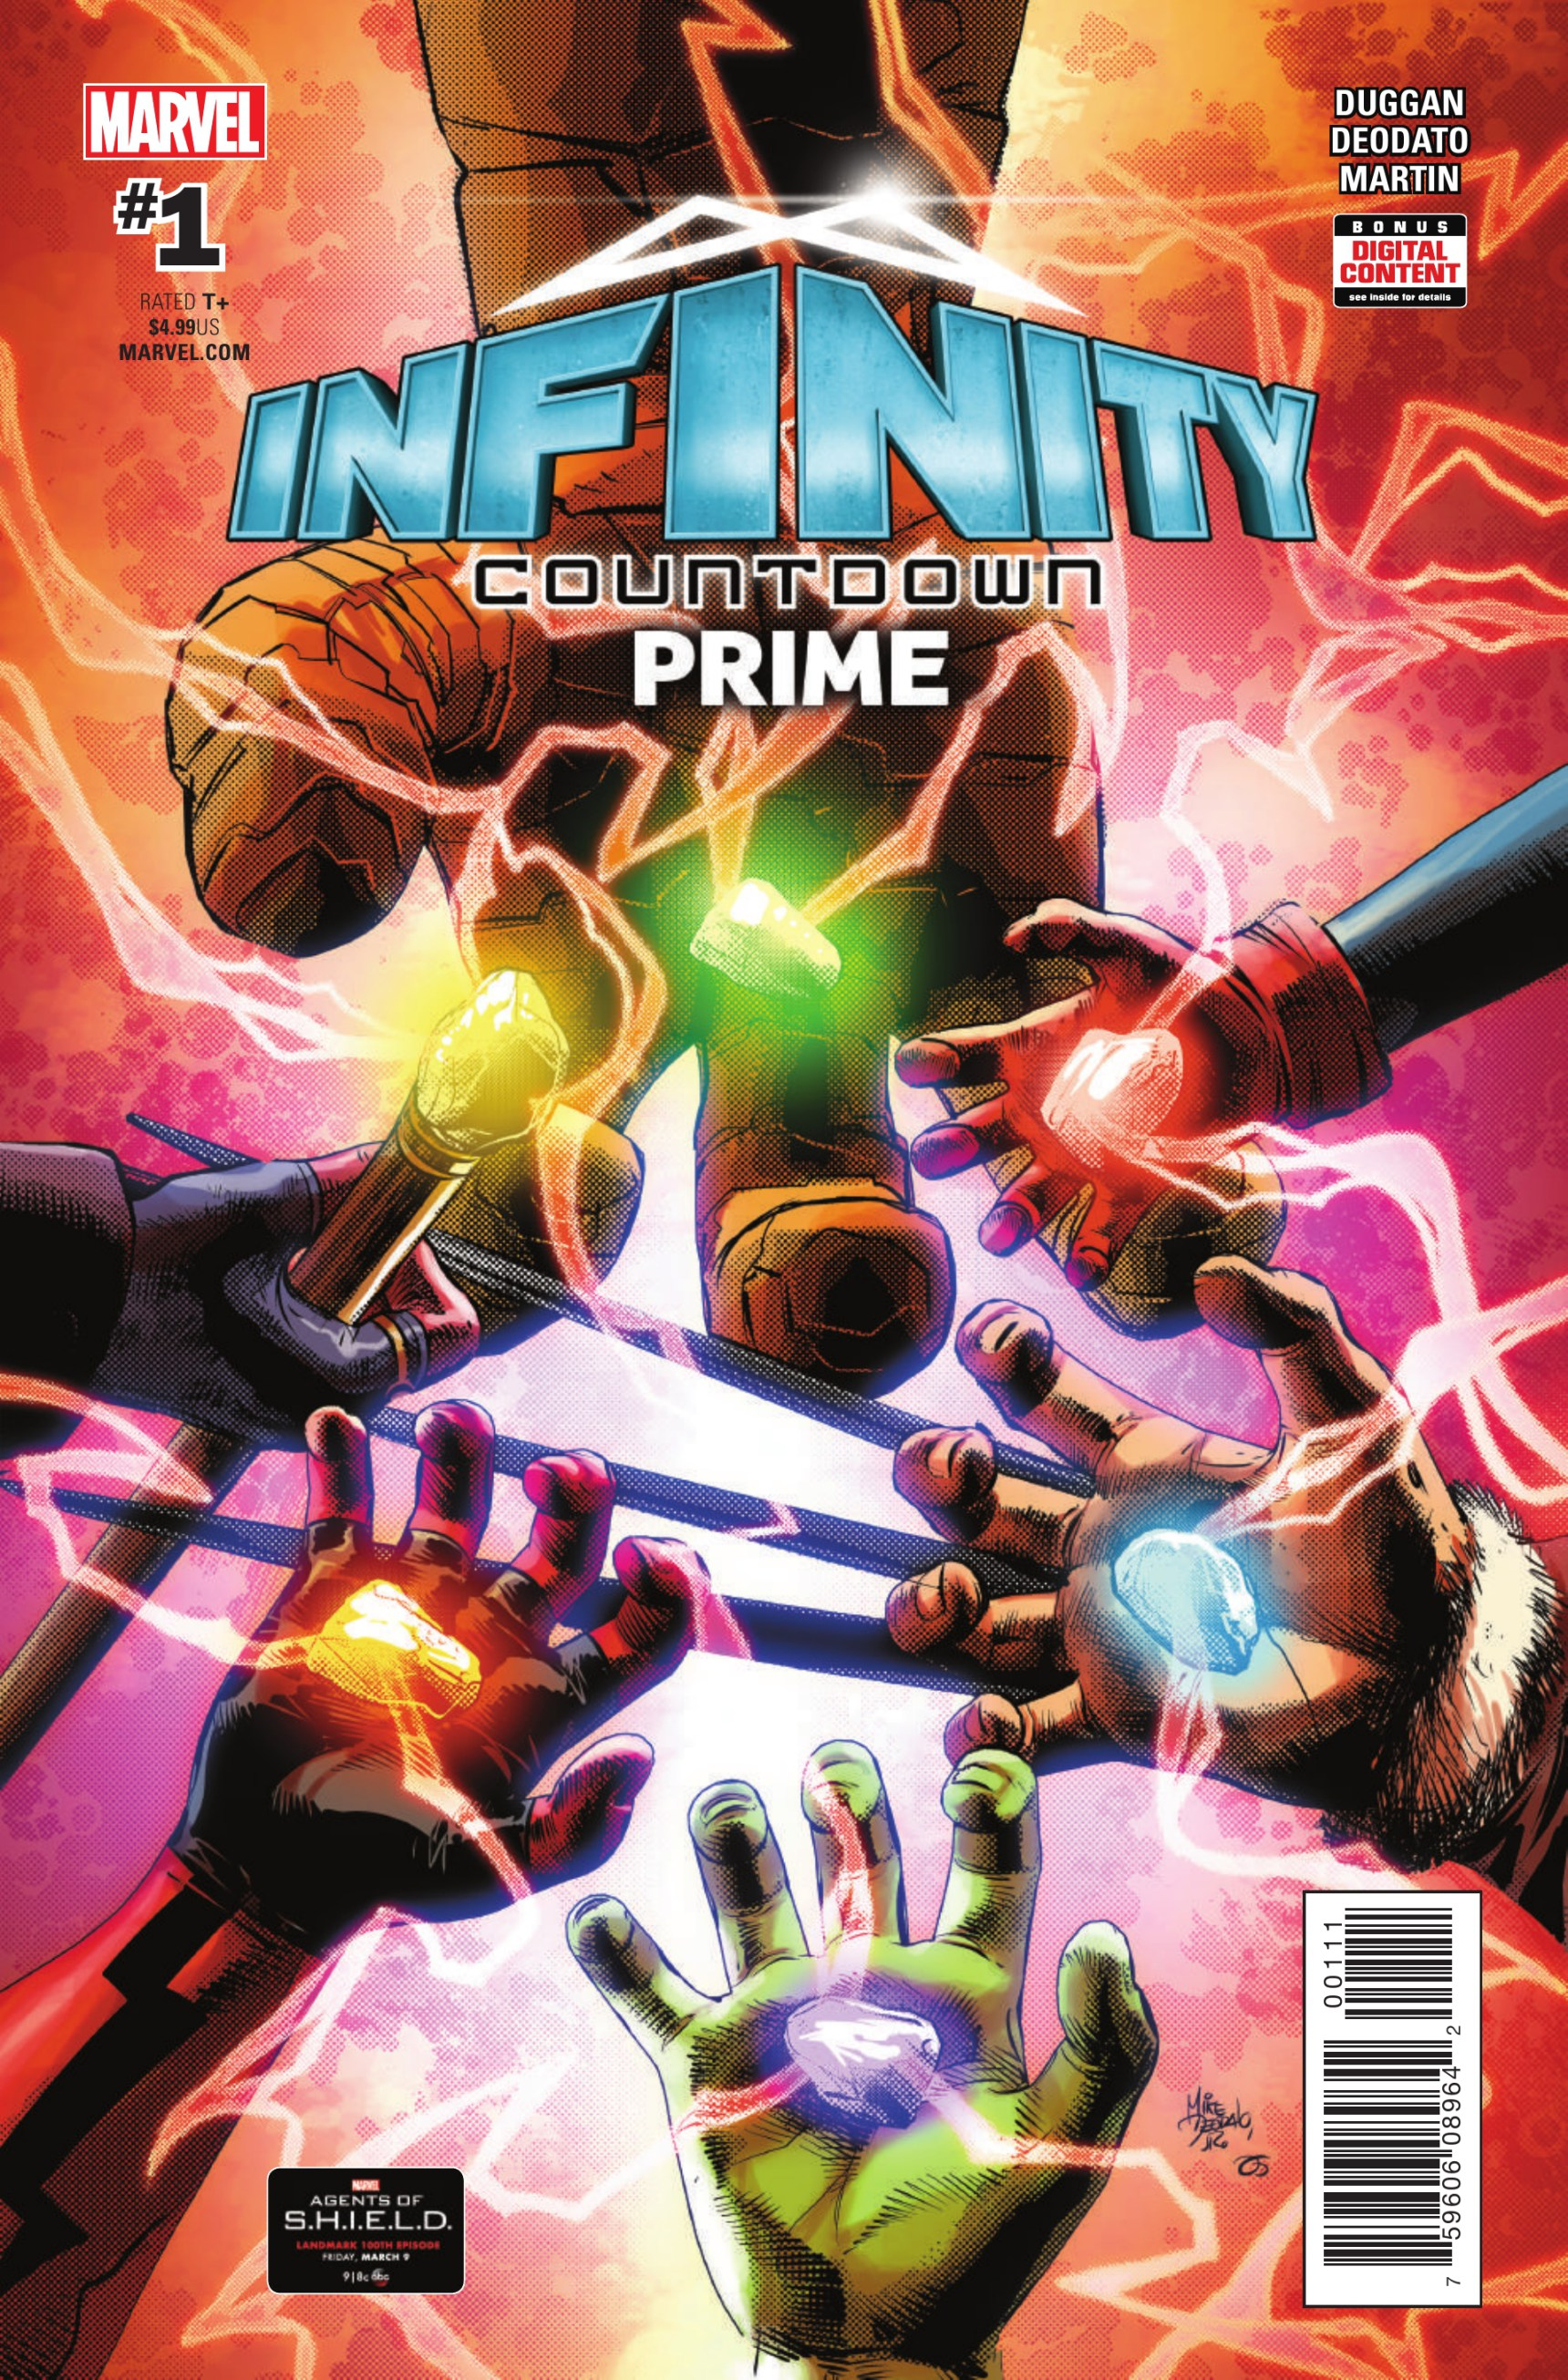 The Infinity Wart Saga Part 1 Issue: Marvel Comics Legacy & Infinity Countdown Prime #1